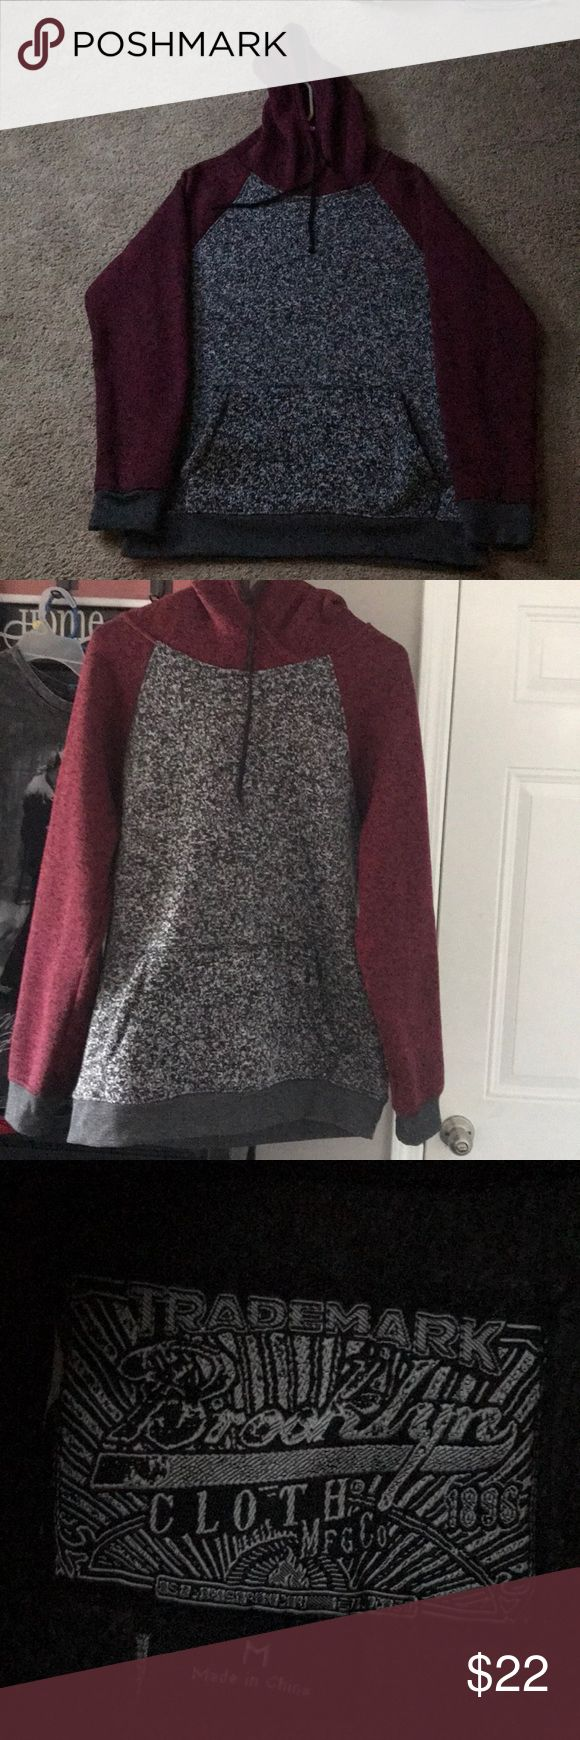 Brooklyn Clothing MFG Company Hoodie Brooklyn Clothing Manufacturing Company Hoodie. Size adult Medium. 100% polyester. Burgundy hood and sleeves and multi colored black and white body. One owner and no smoking home. Great condition! Brooklyn Clothing Shirts Sweatshirts & Hoodies